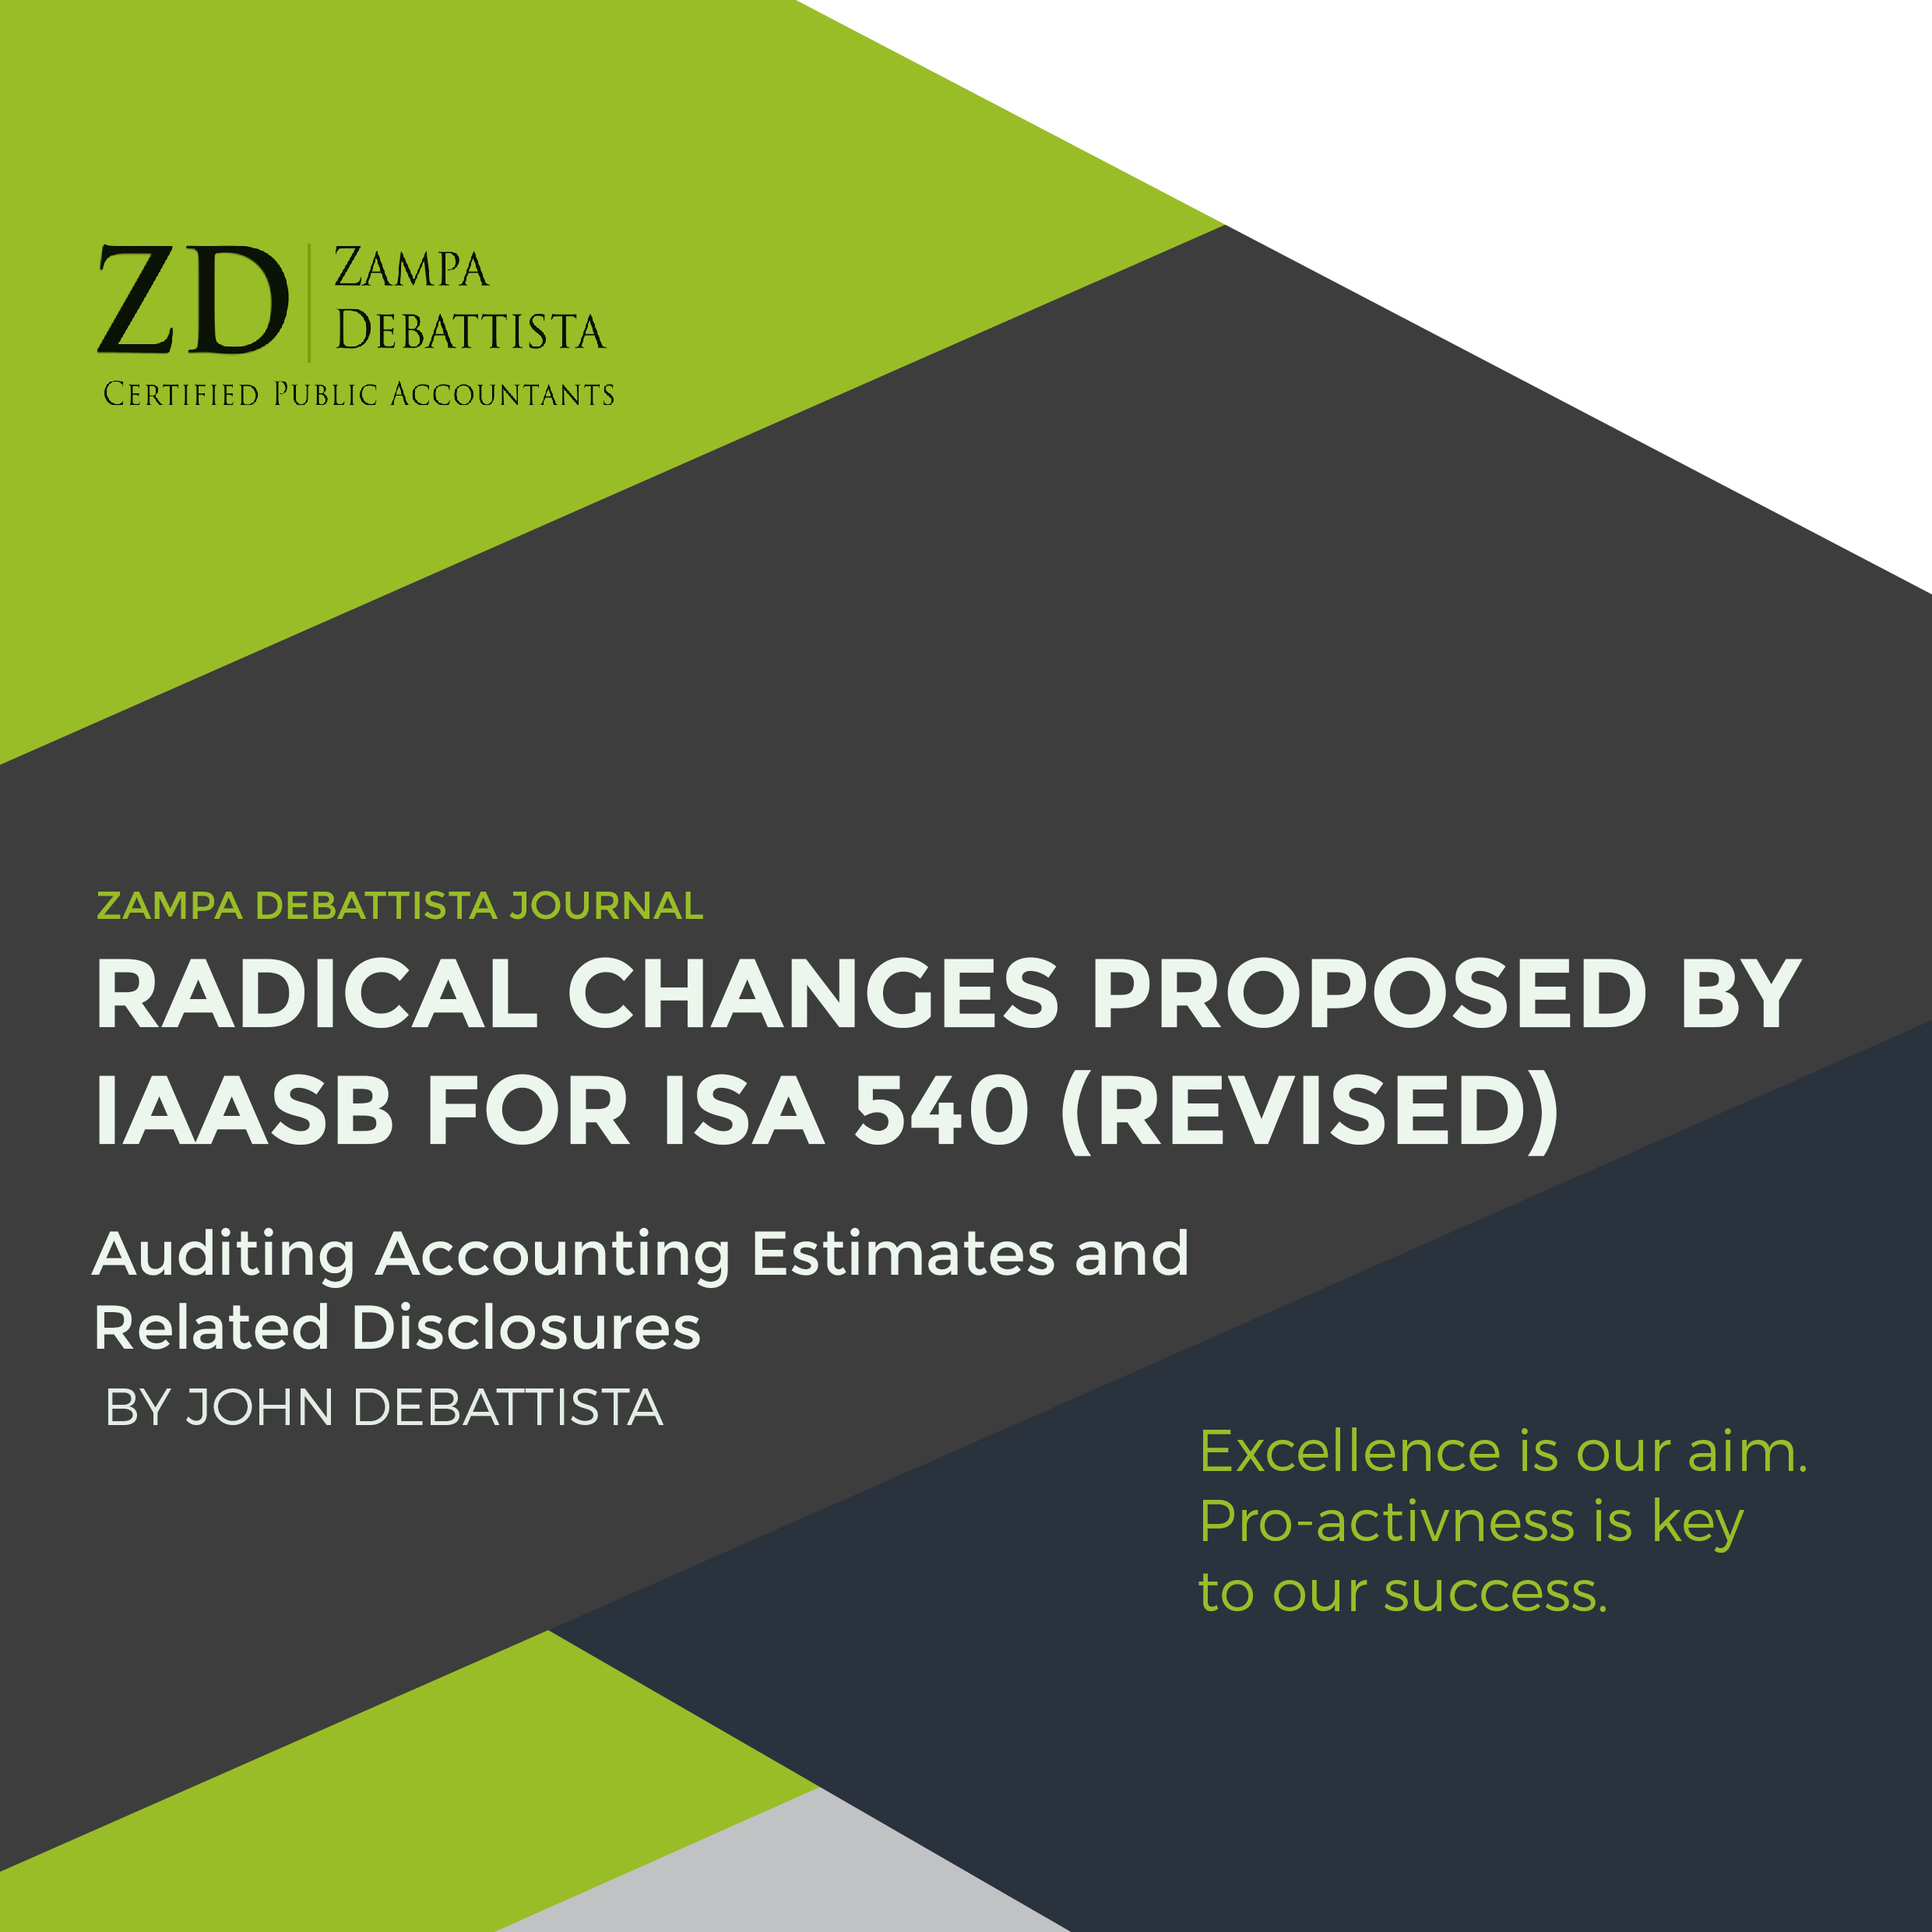 Radical Changes Proposed by IAASB for ISA 540 (Revised), Auditing Accounting Estimates and Related Disclosures – by John Debattista